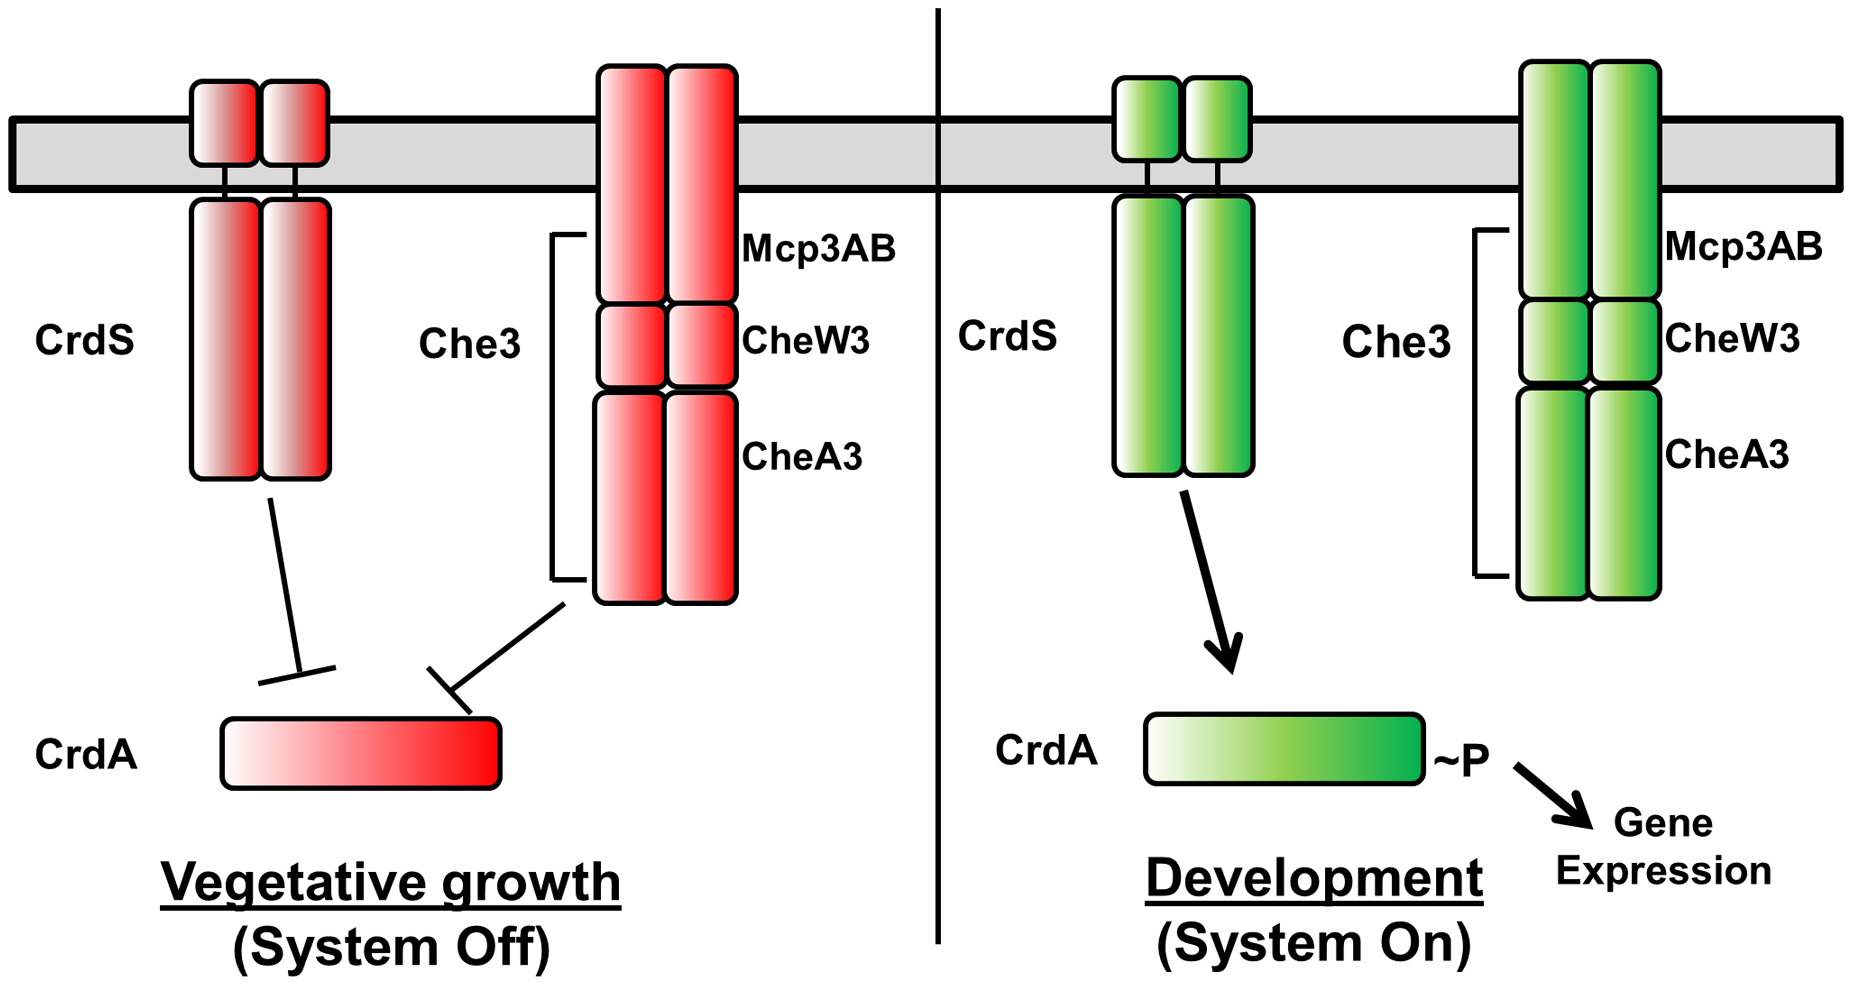 Model for Cross Regulation of CrdA by CrdS and the Che3 Chemosensory System.